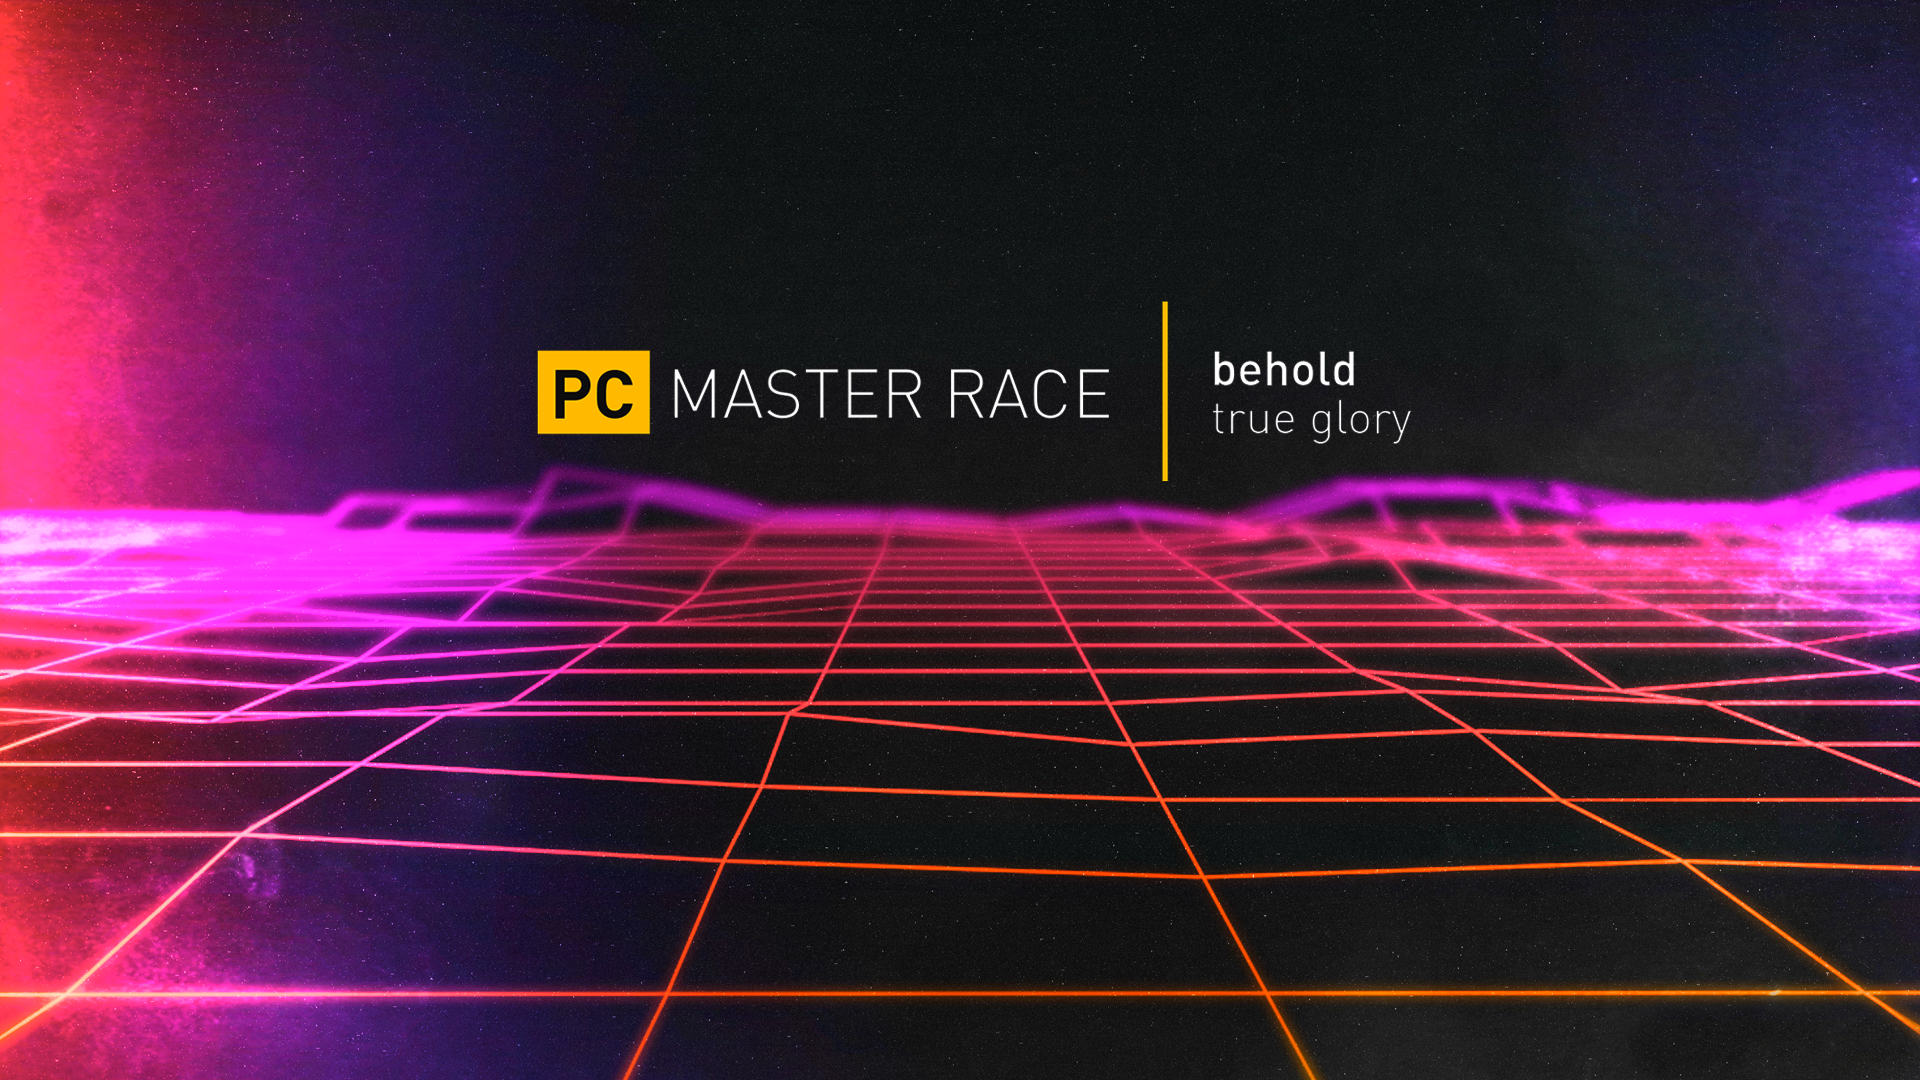 PCMR animated wallpaper.